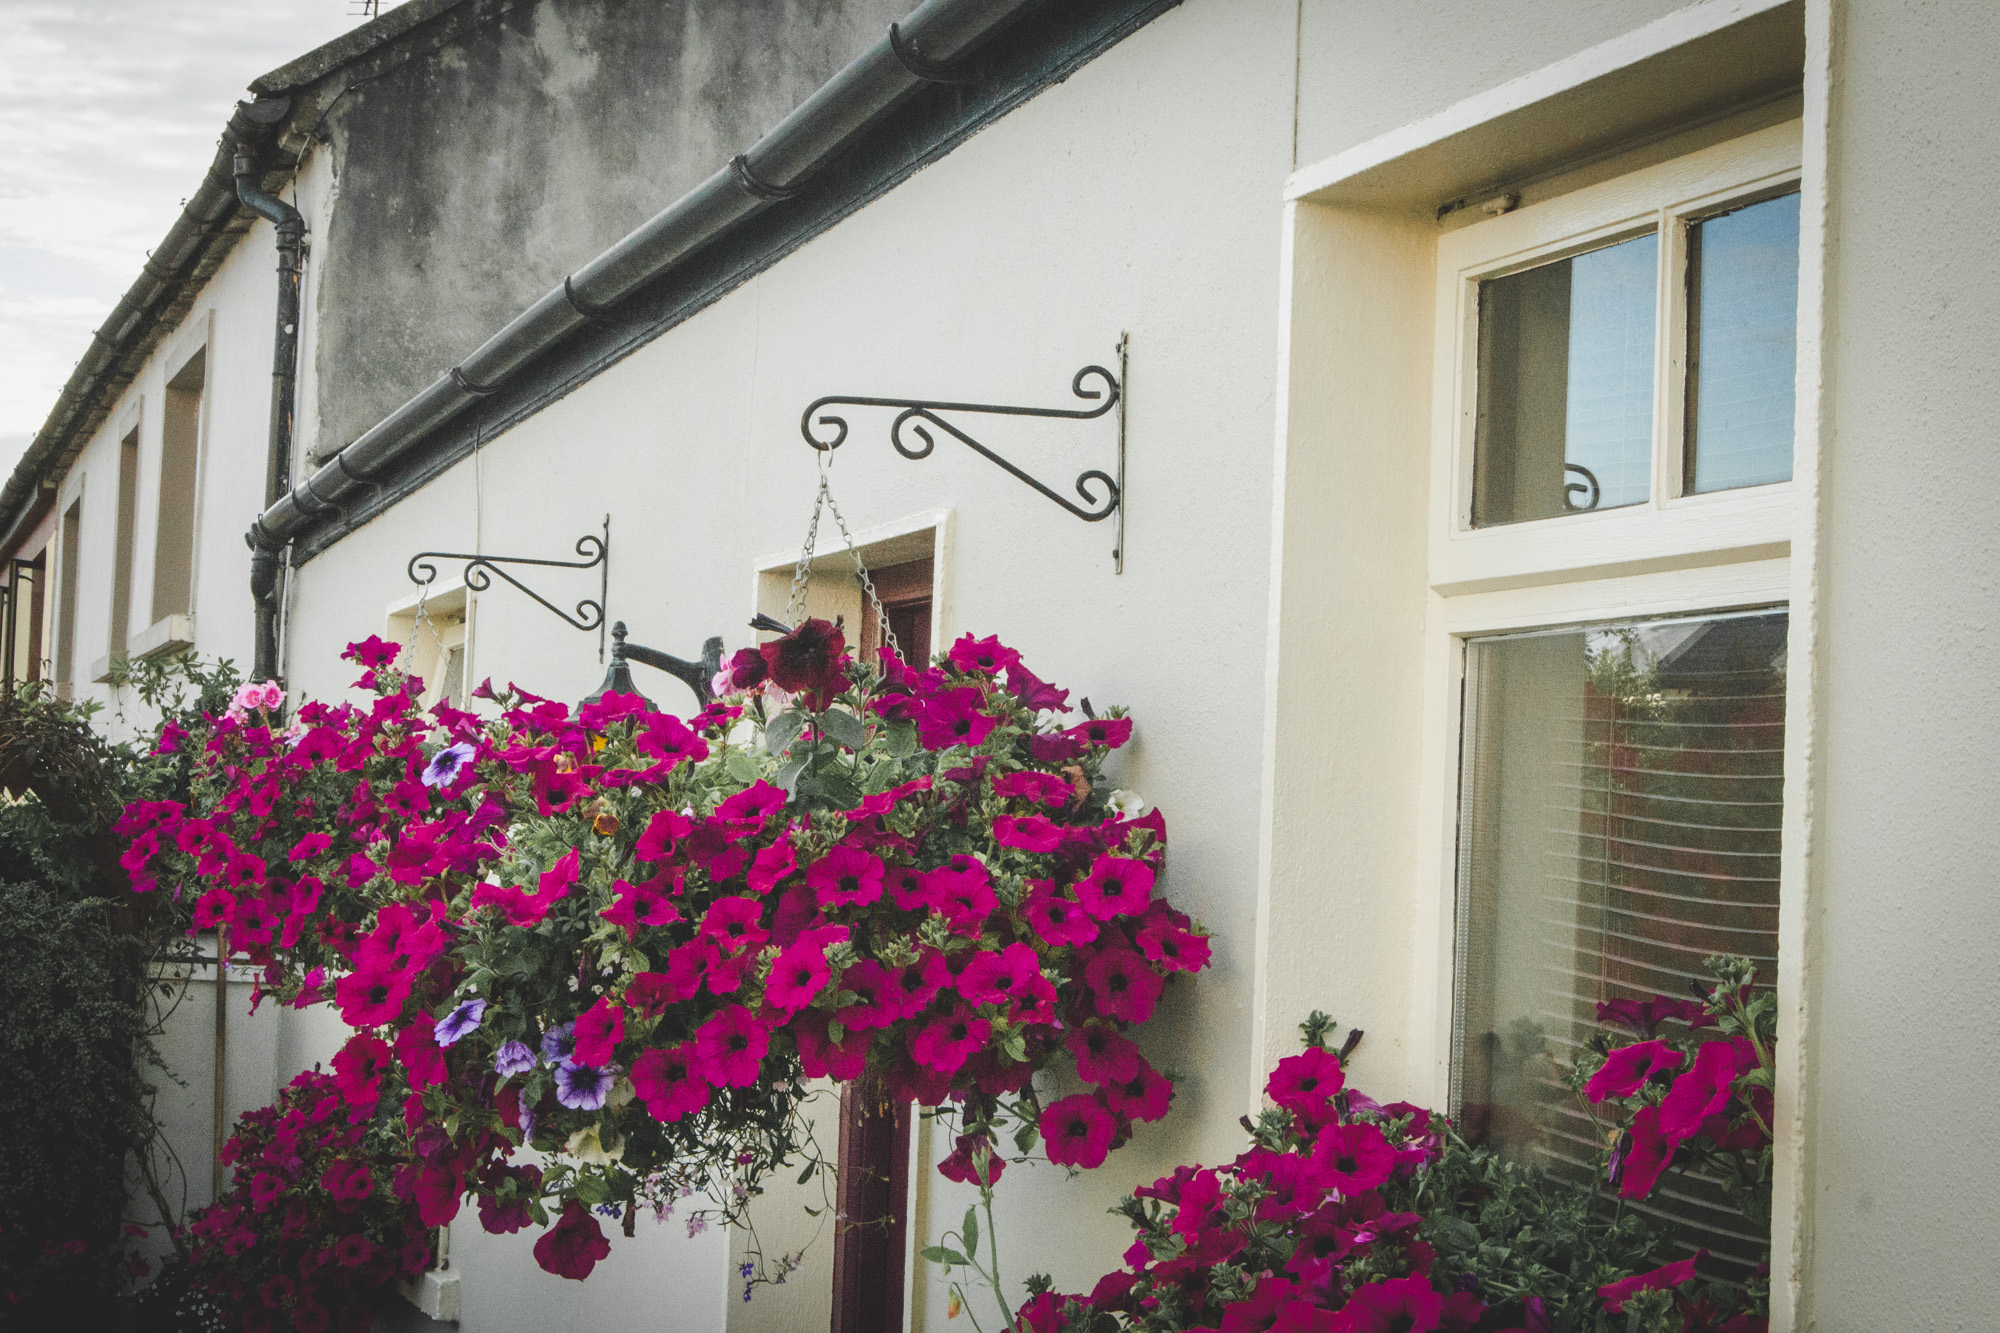 Colorful Flowers on a House in Killarney in Ireland